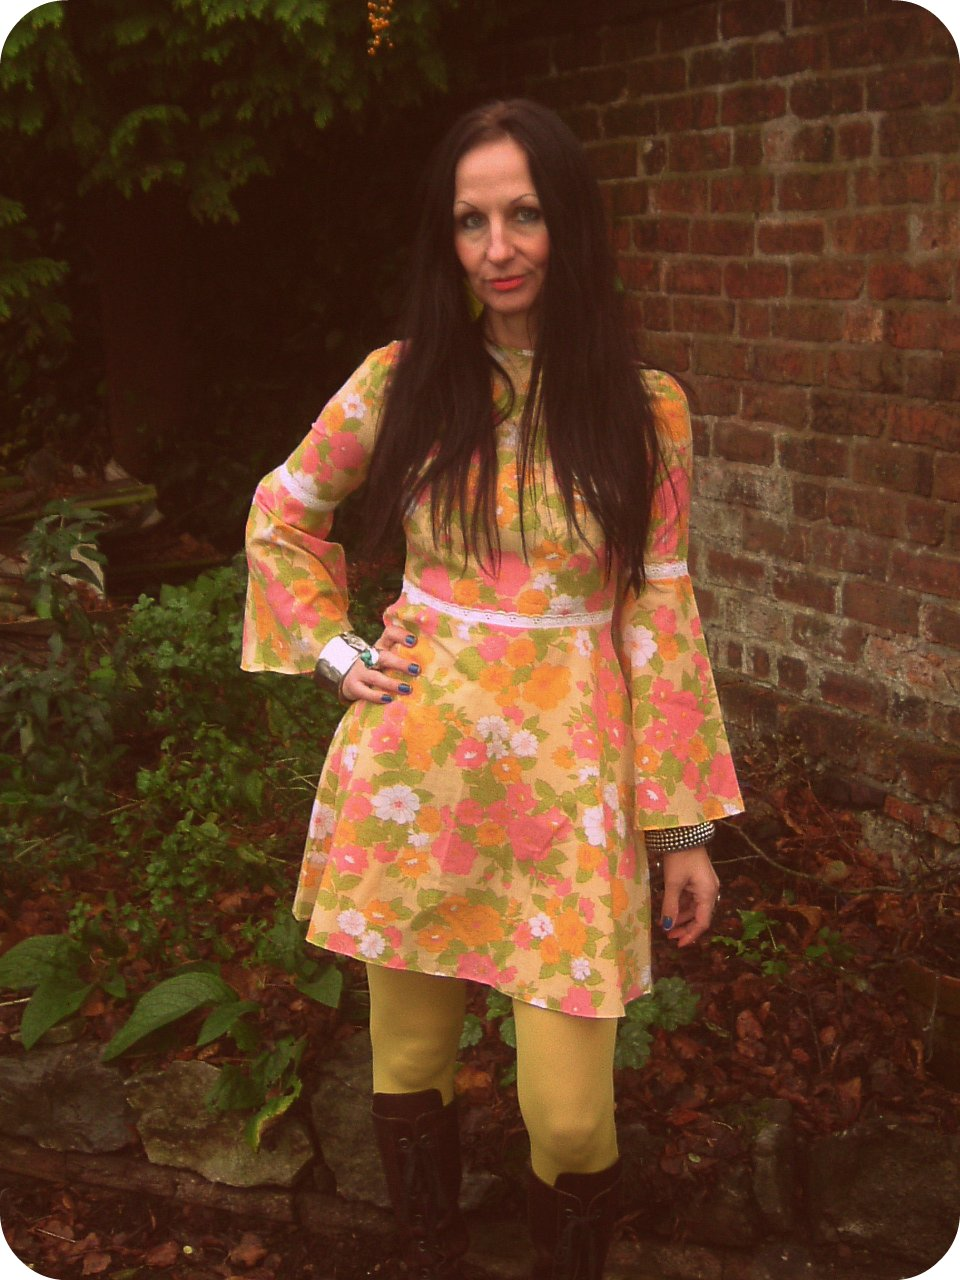 Hippies 1960s Fashion Women | www.imgkid.com - The Image ...